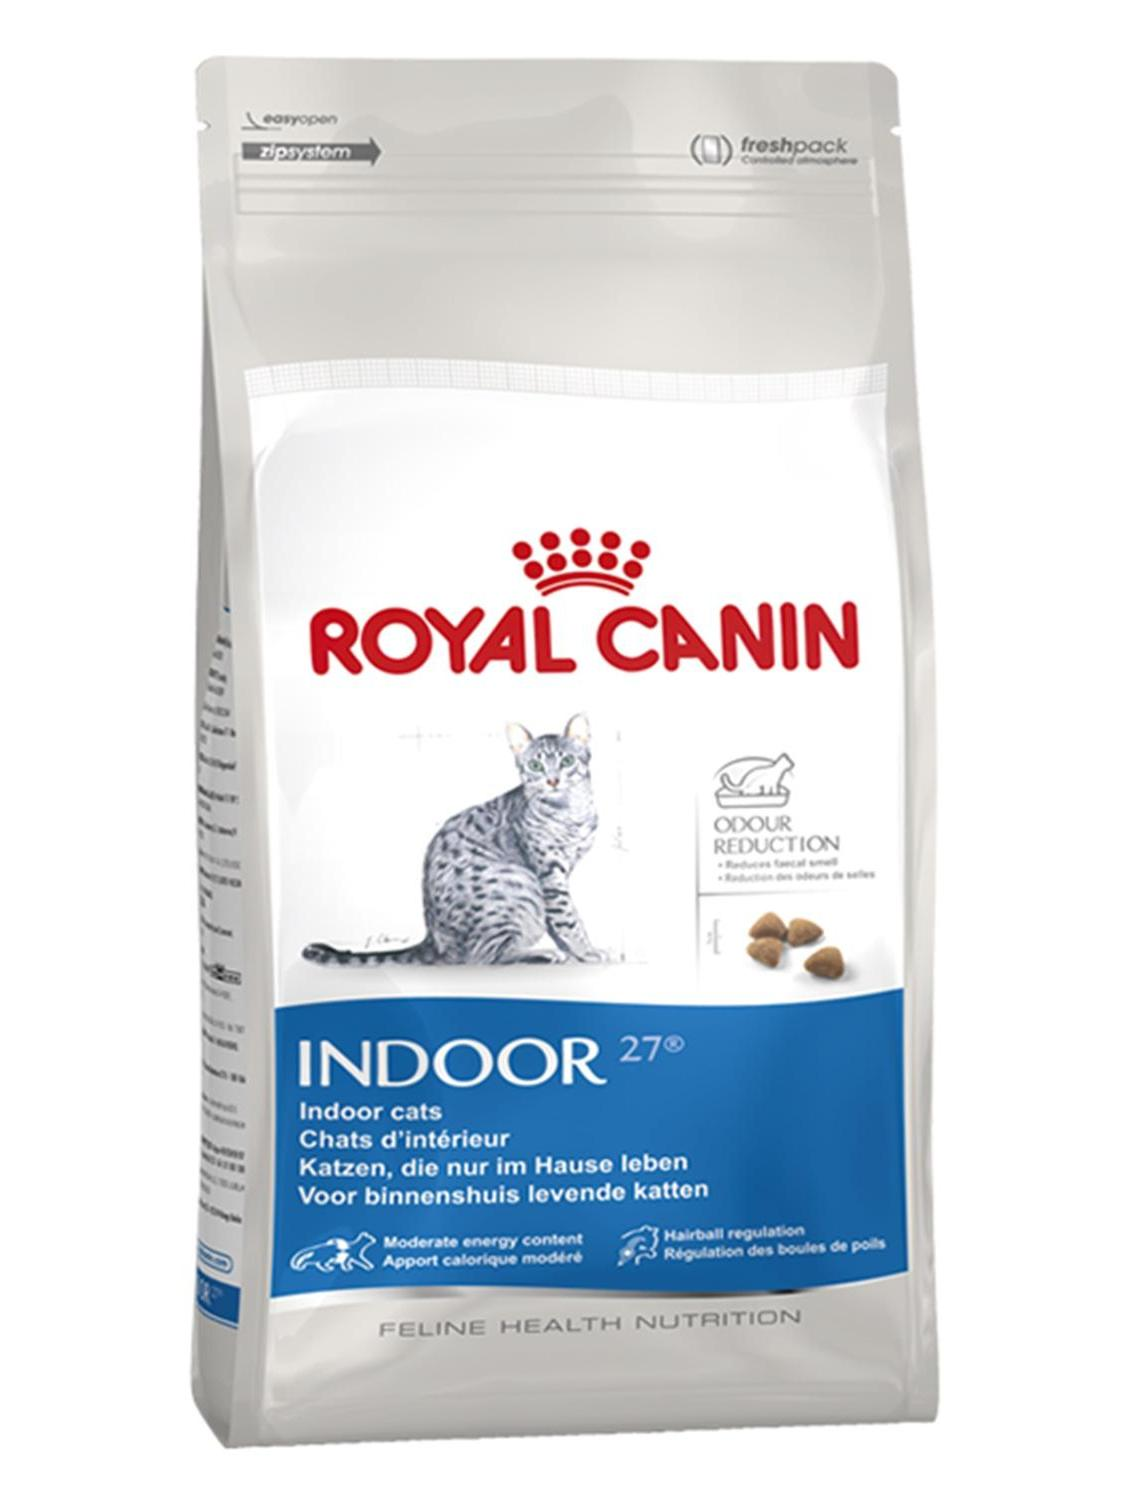 Royal Canin Indoor 27 Cat Food For Cats Always in House Old Cats 2 Kg Healthy Growth Feeding Pet Immunity Flora Support image